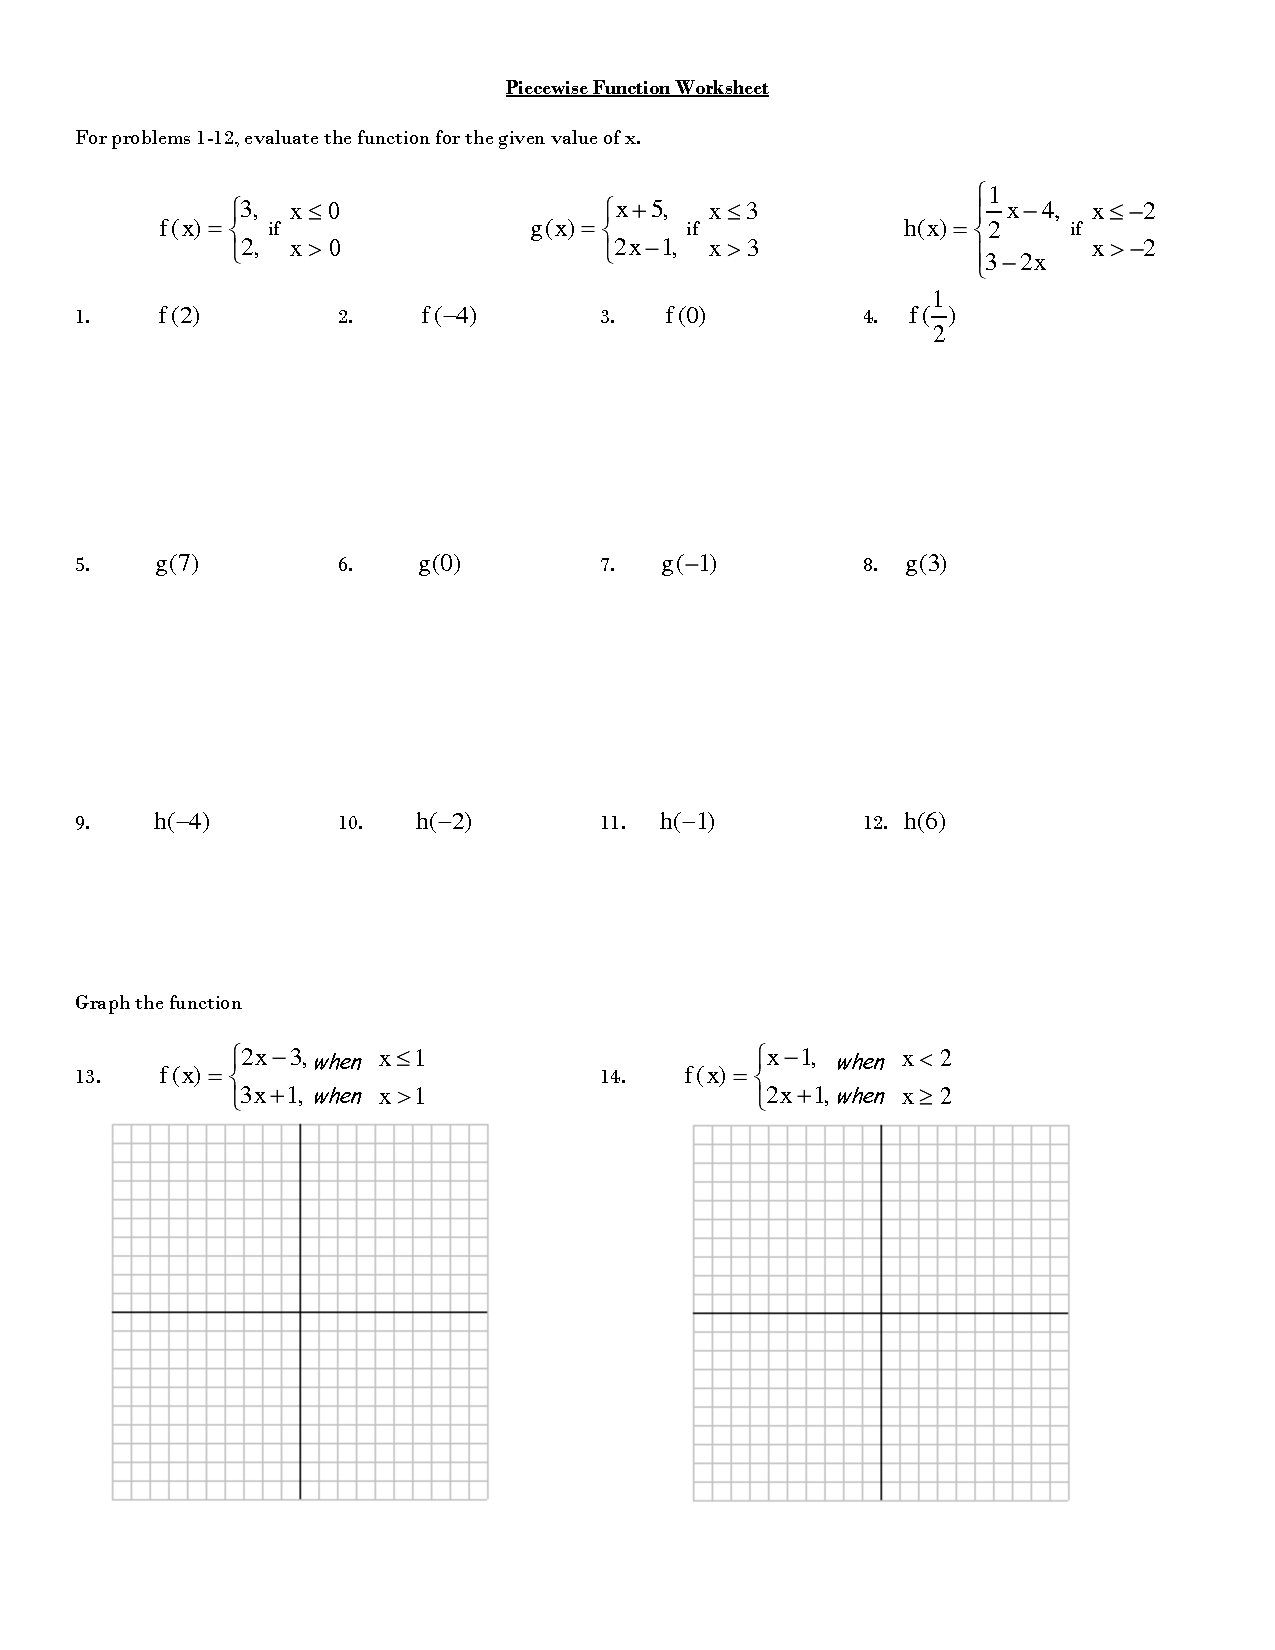 Greatest Integer Worksheet